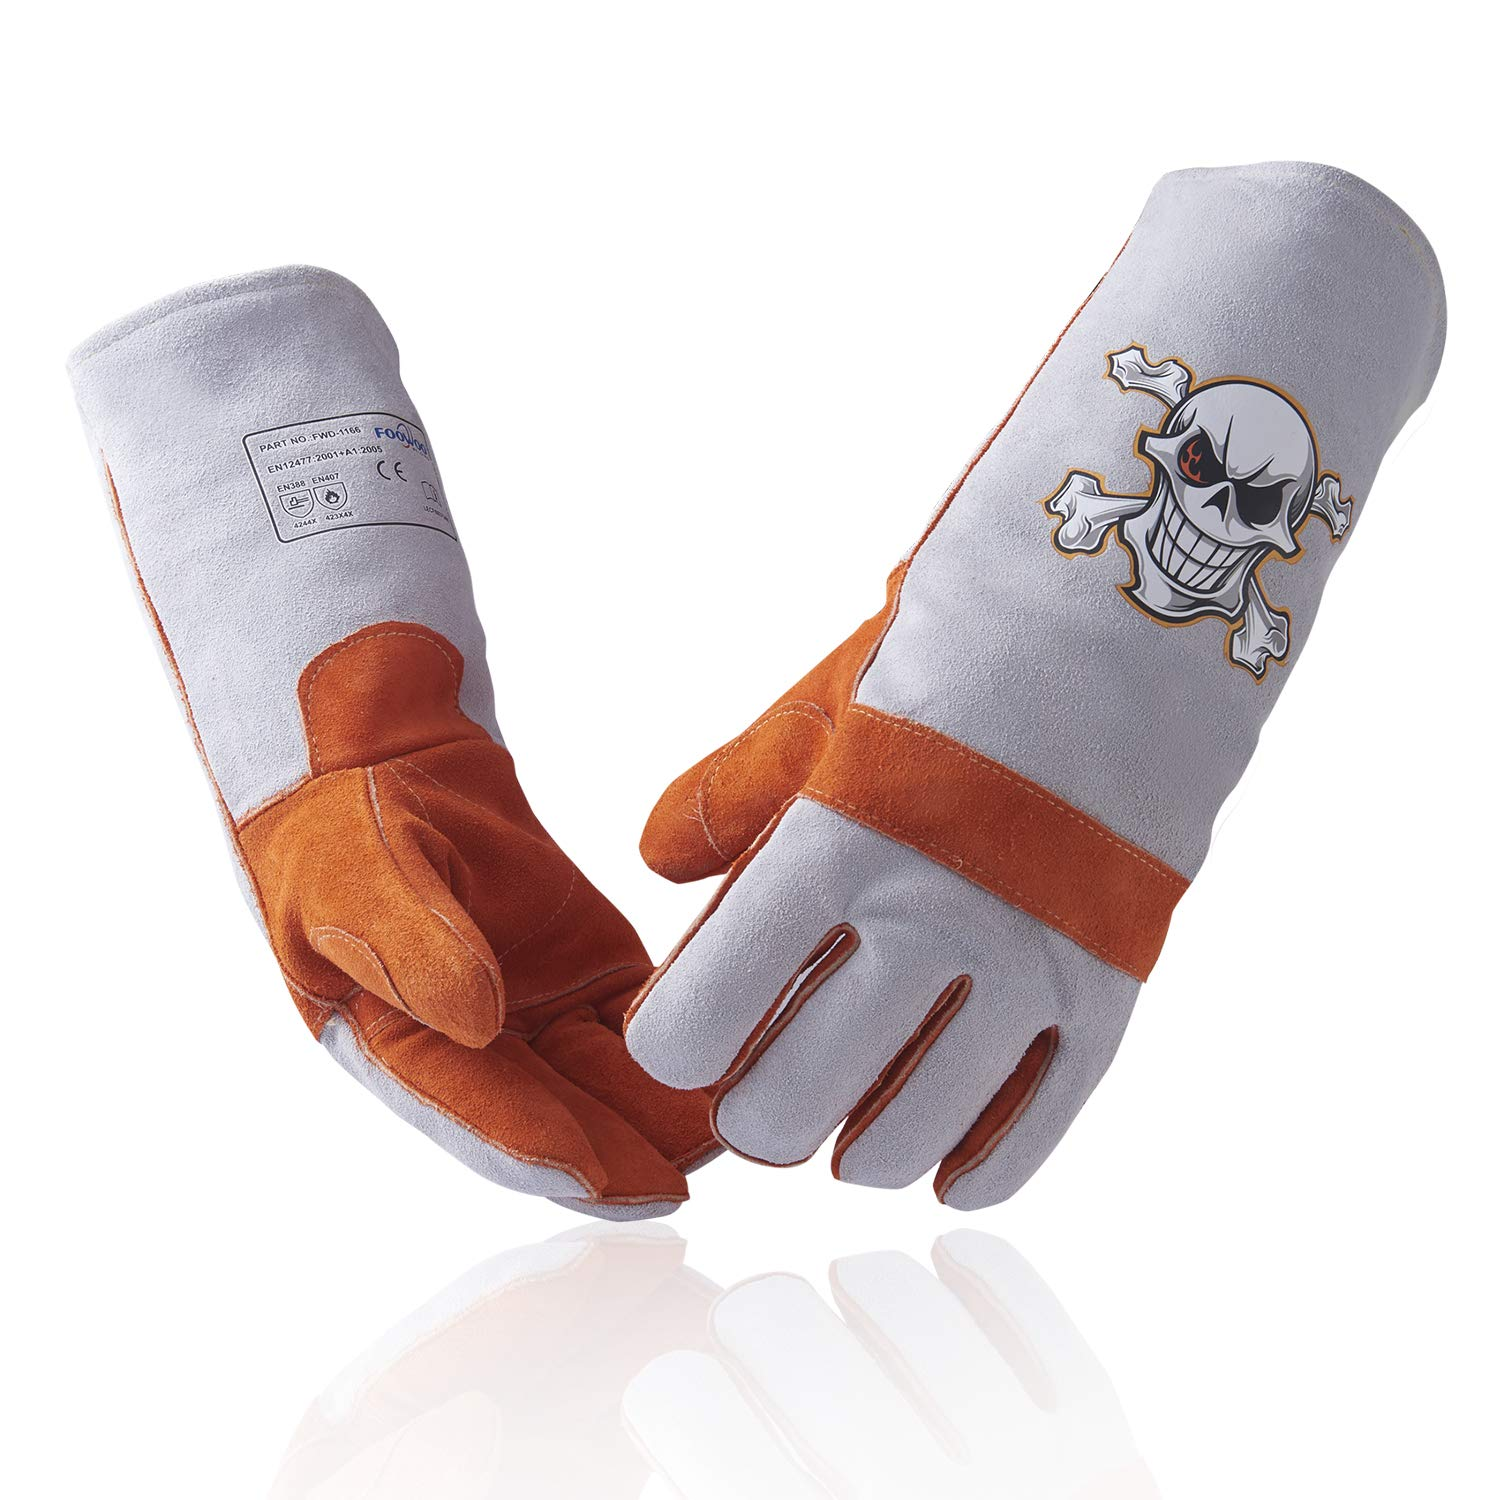 """Foowoo Cowhide Leather Stick/MIG Welding Gloves with KEVLAR heat/fire Resistant thread,Mitts for Fireplace,Stove,Oven,Grill,Pot Holder,Plasma Cutter,Animal Handling,16"""" Orange-Grey/Welder Hand Protect"""